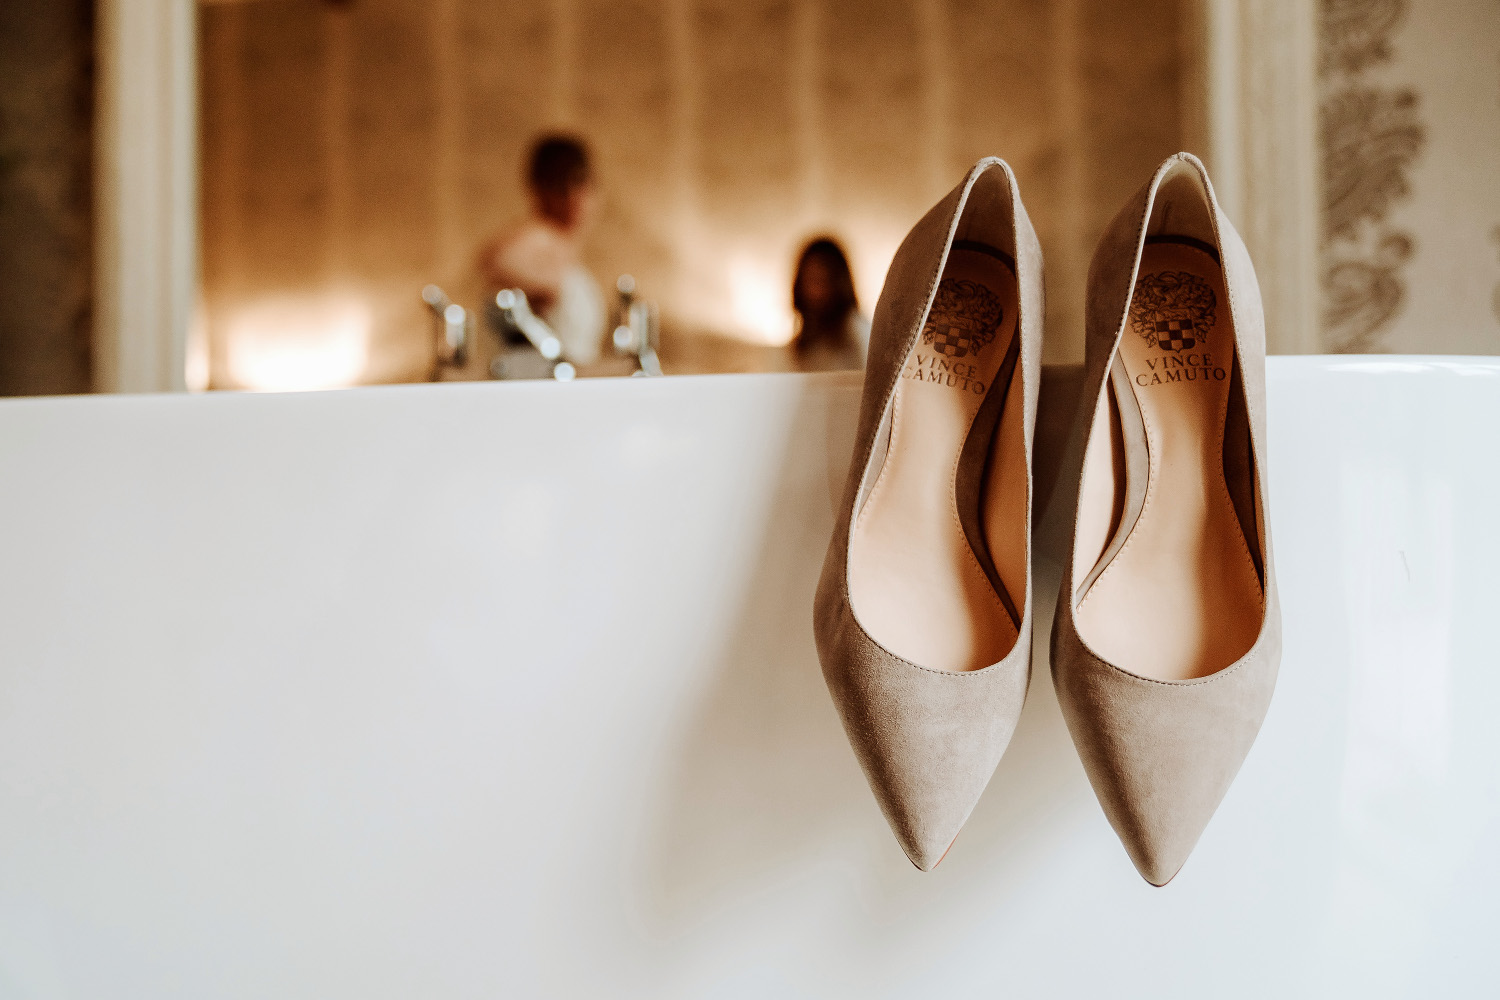 Vince Camuto wedding shoes hanging on edge of bath